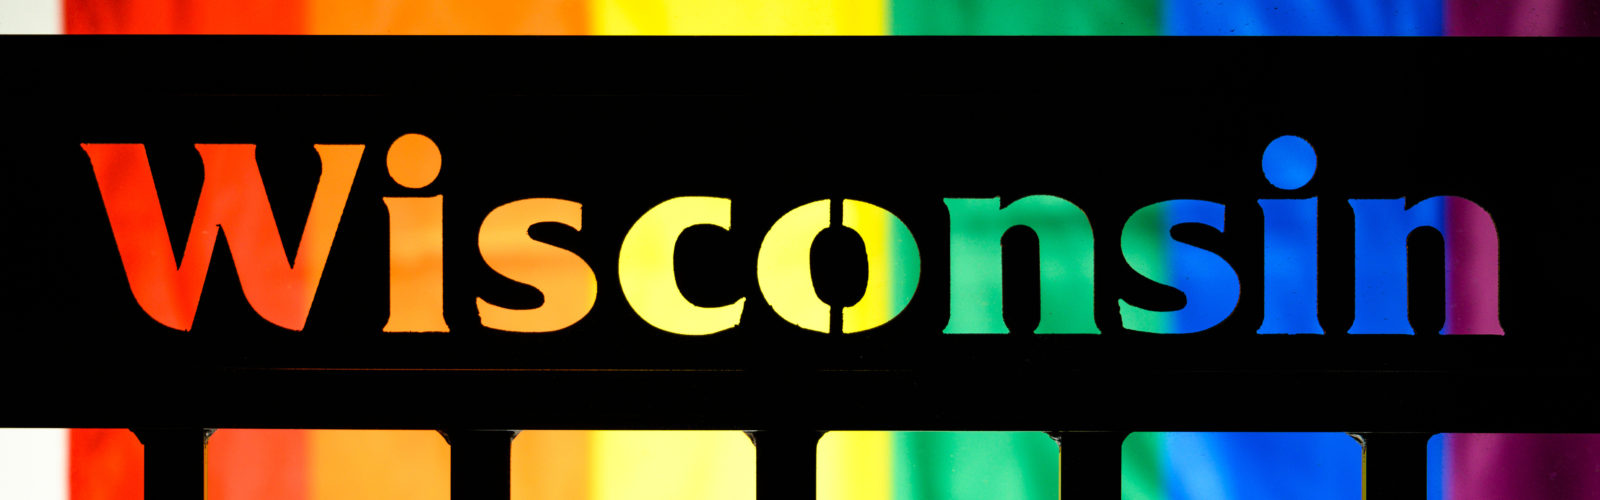 The word Wisconsin on the side of a bus shelter silhouetted against the rainbow colors of a Pride flag.